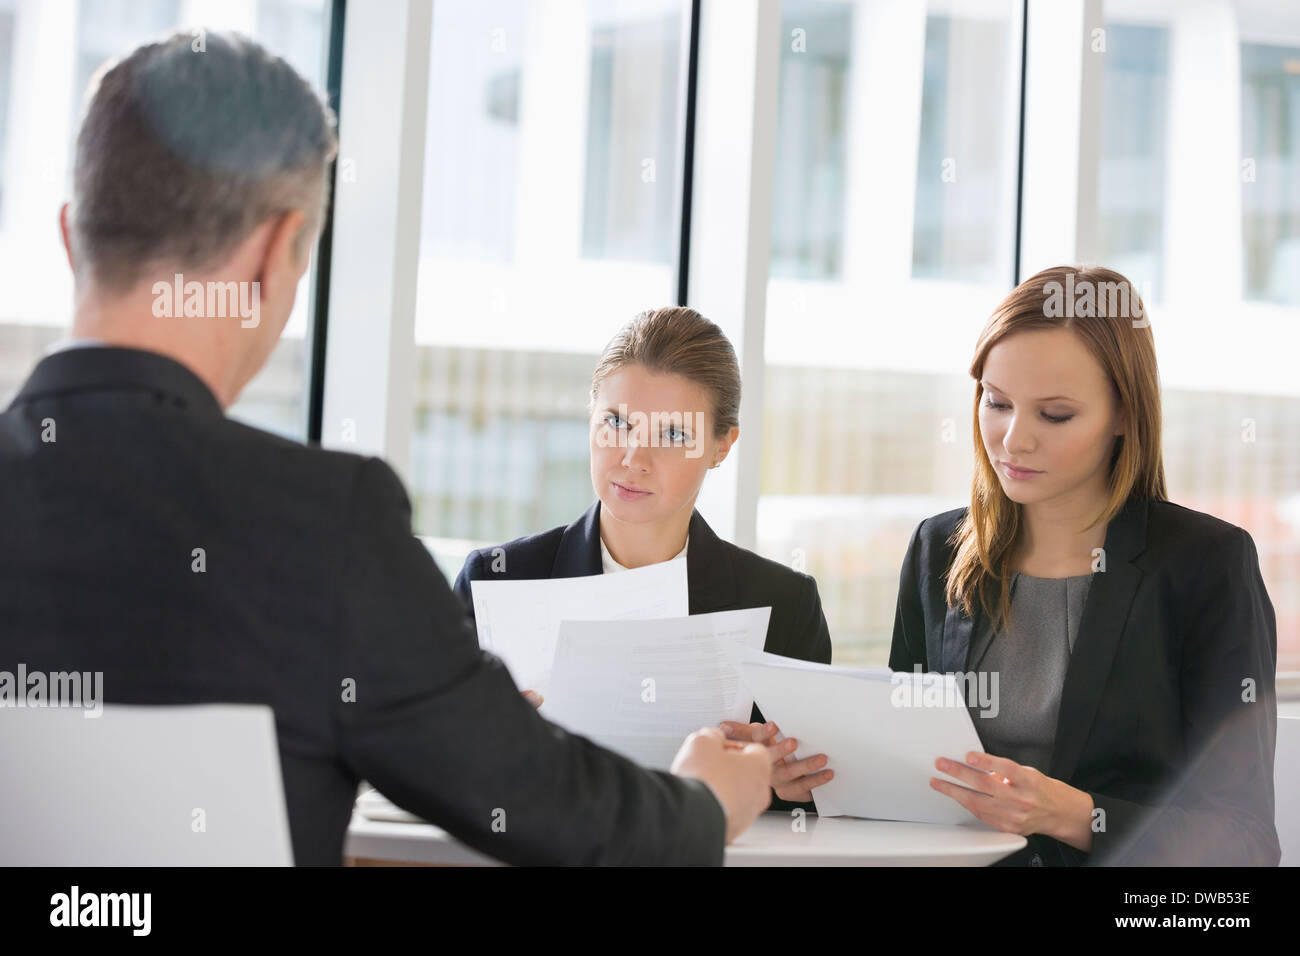 Business people discussing paperwork in office cafeteria Stock Photo